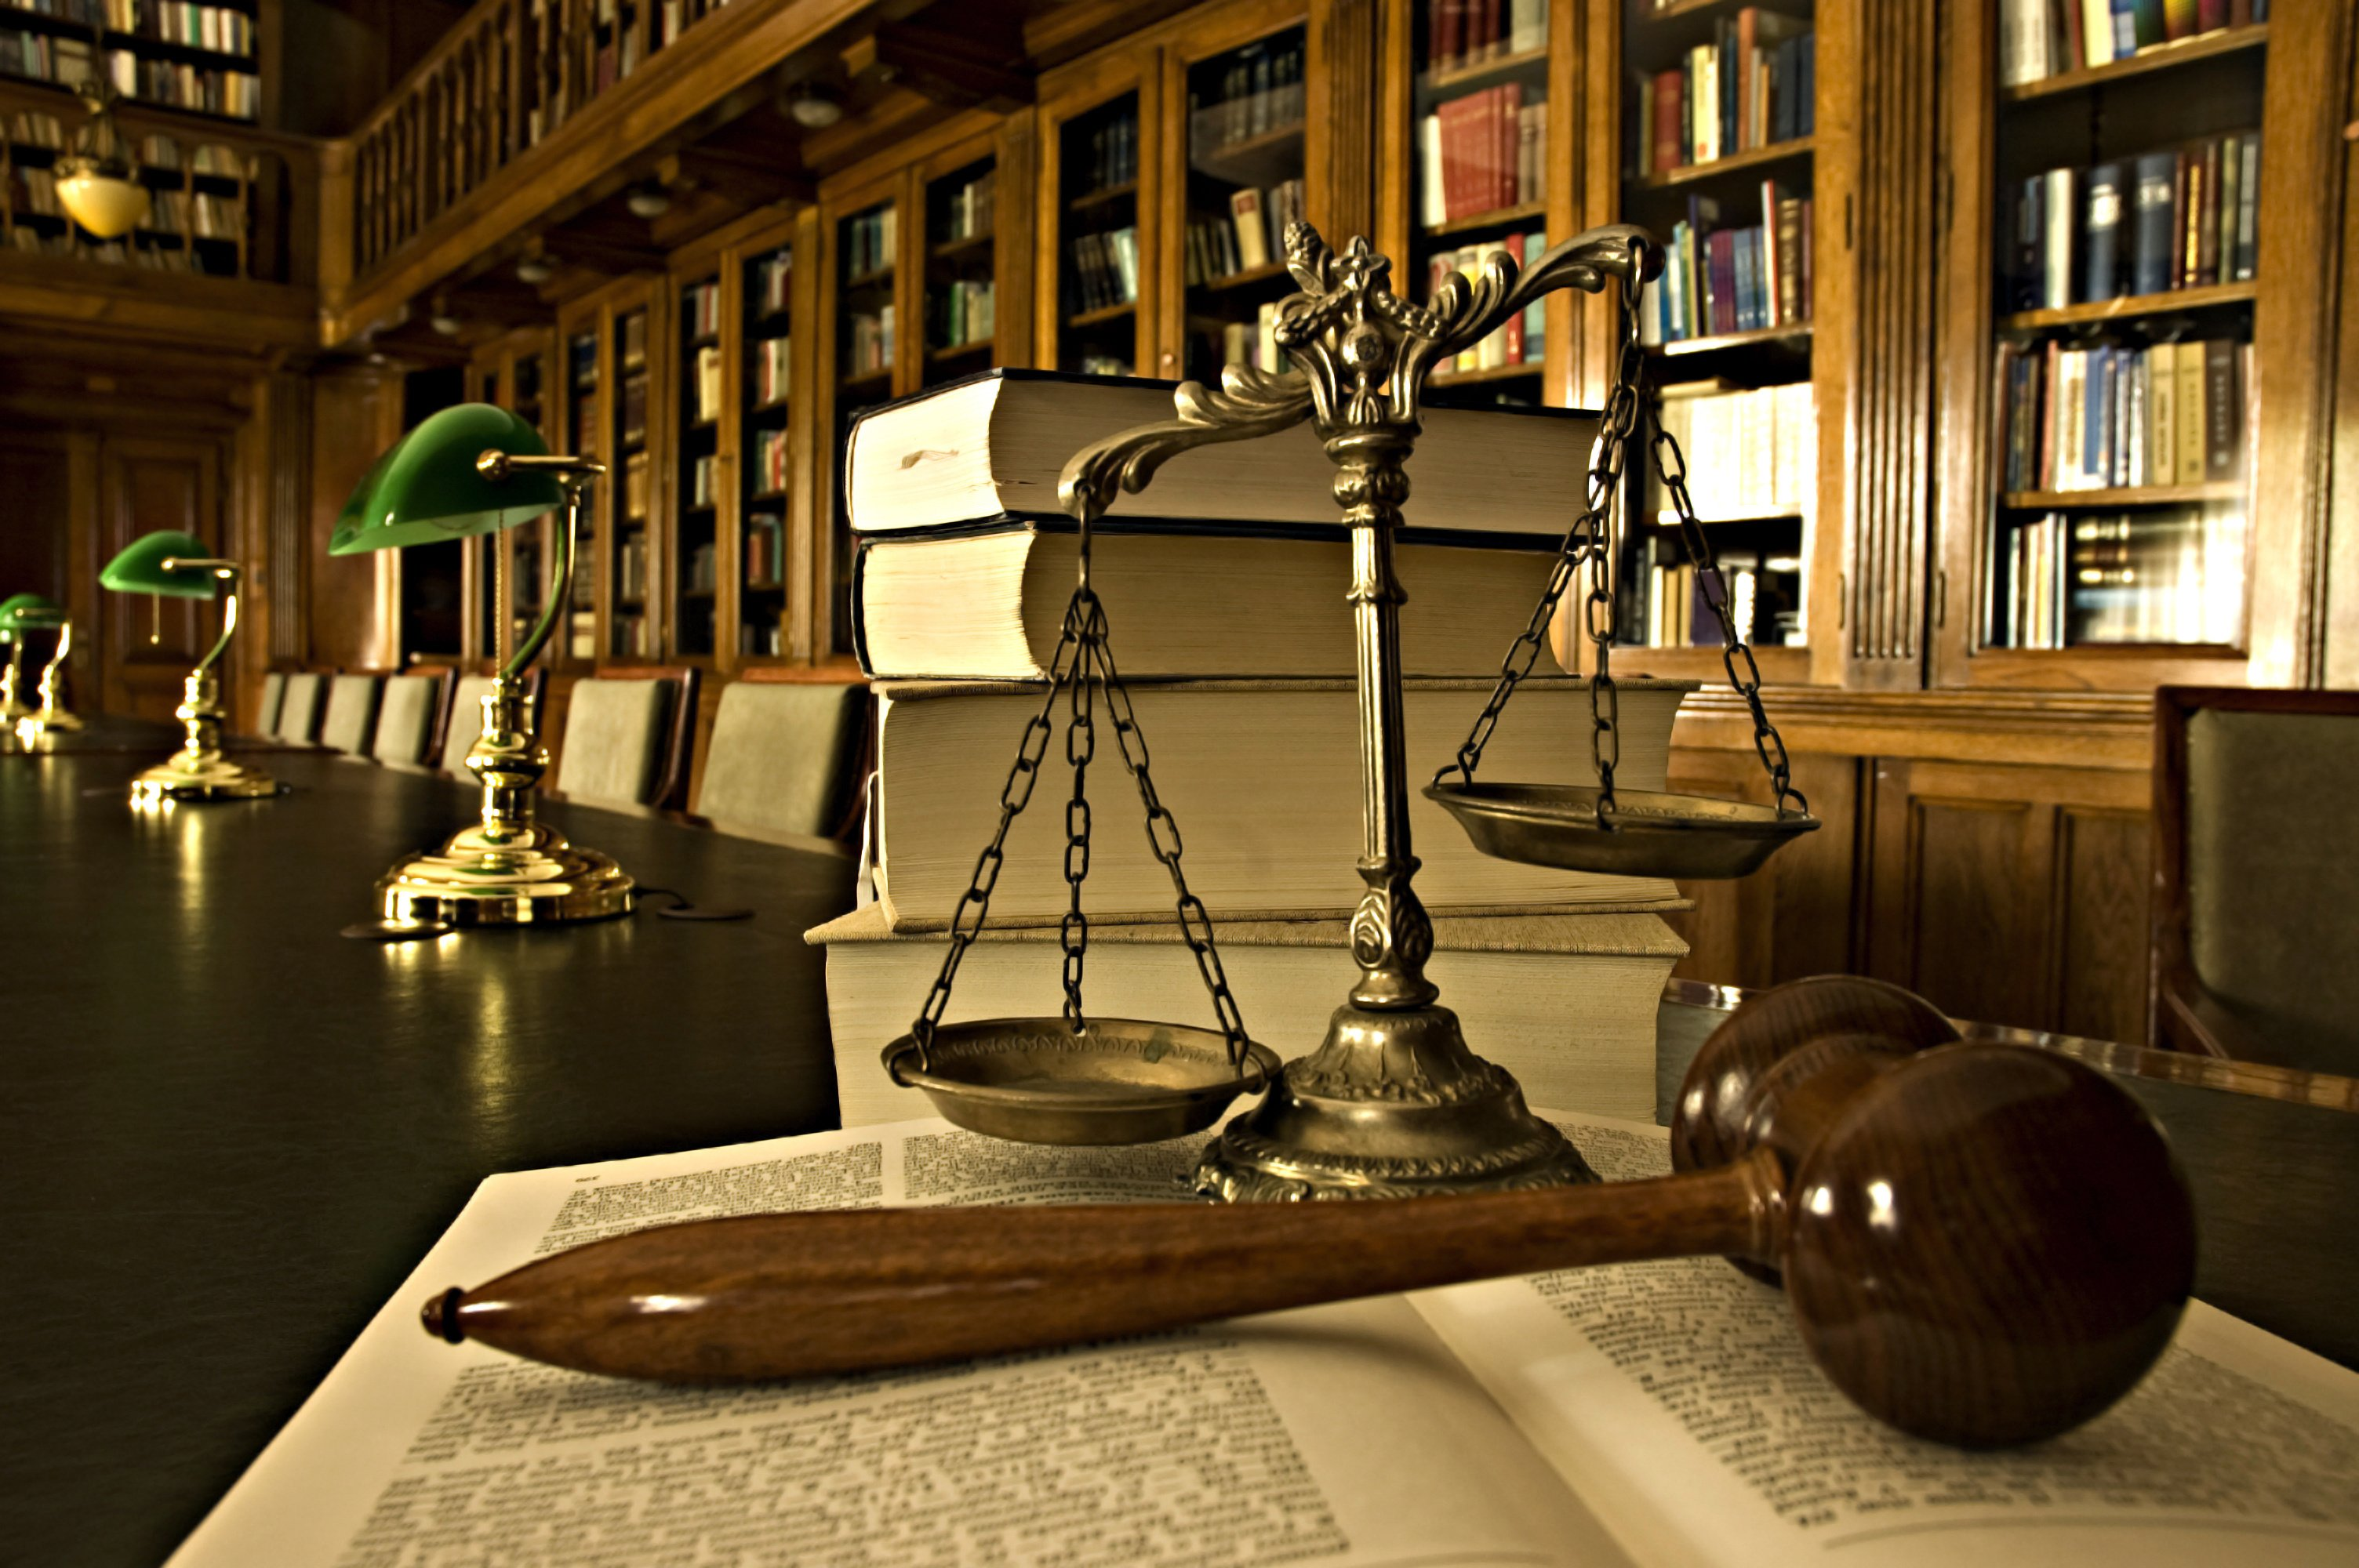 Open law books in library with gavel and scale